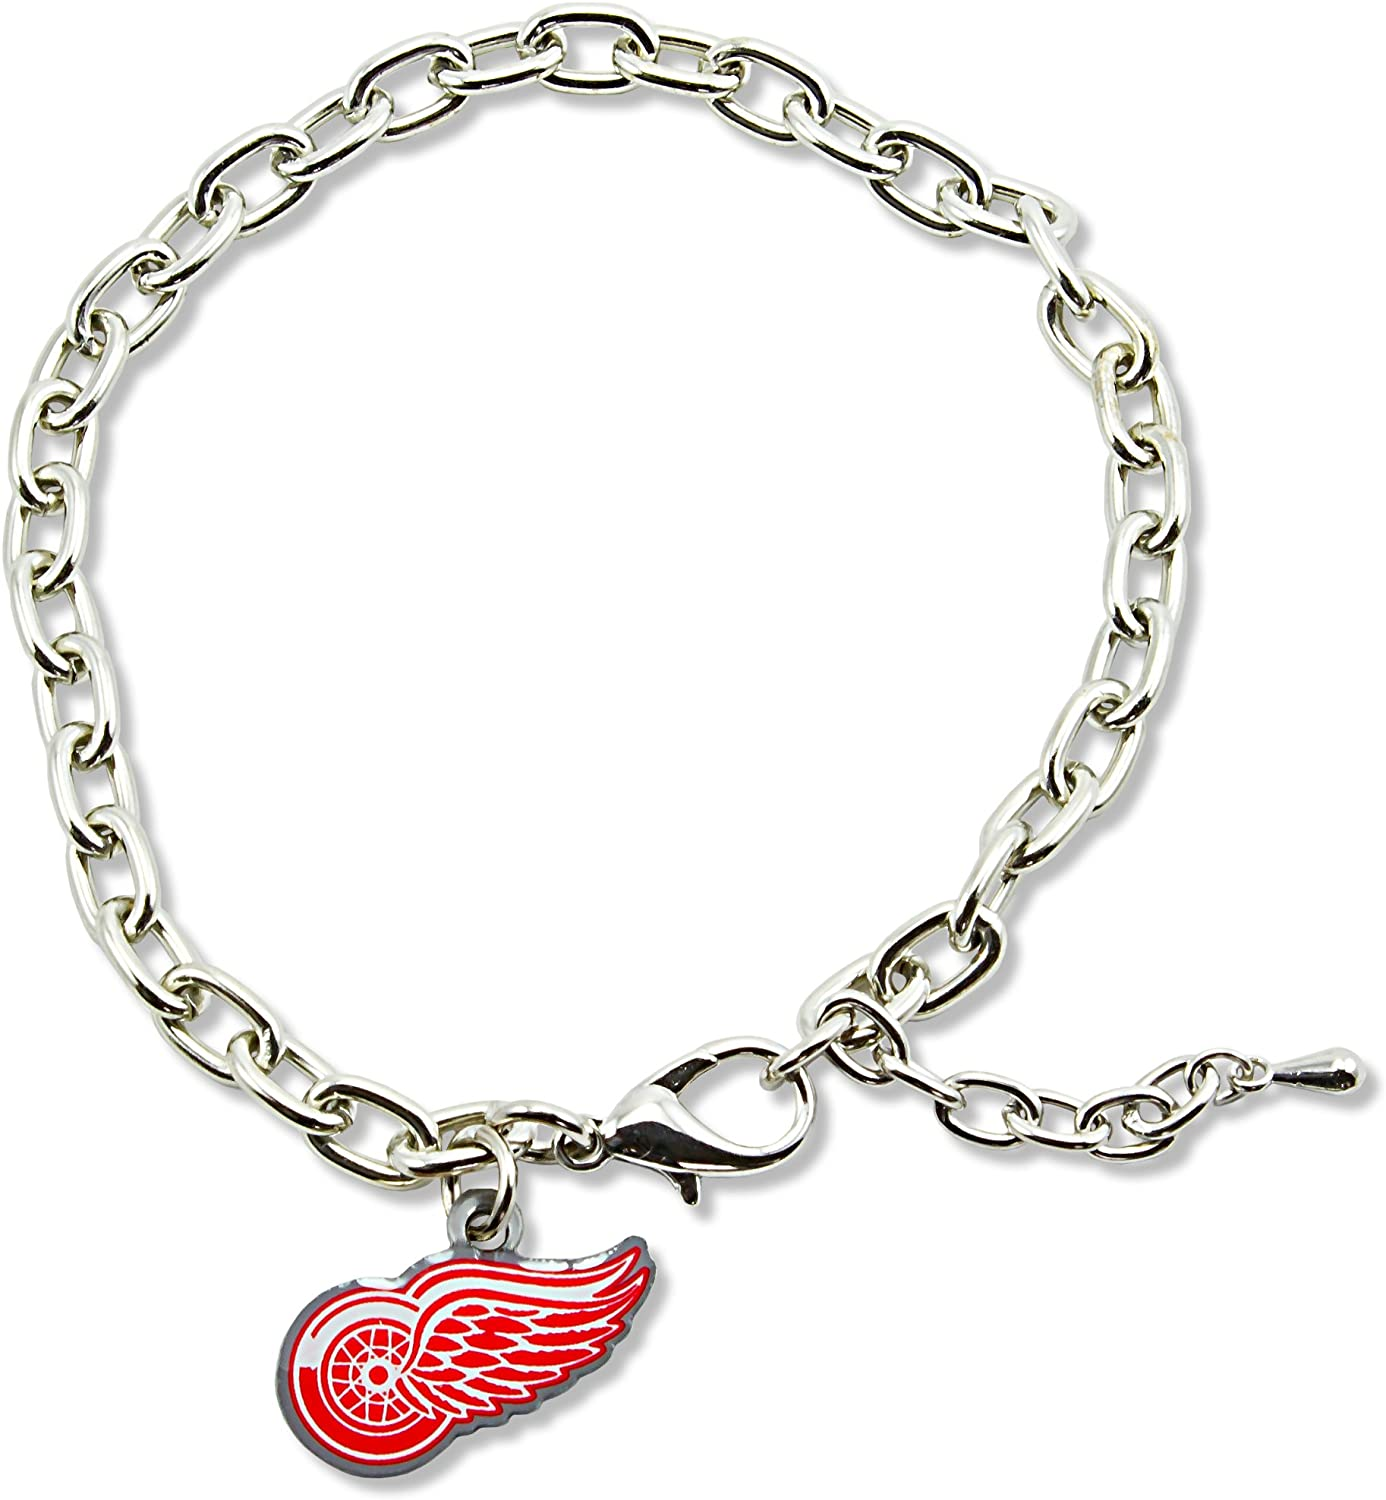 NHL Detroit Red Wings Logo Bracelet